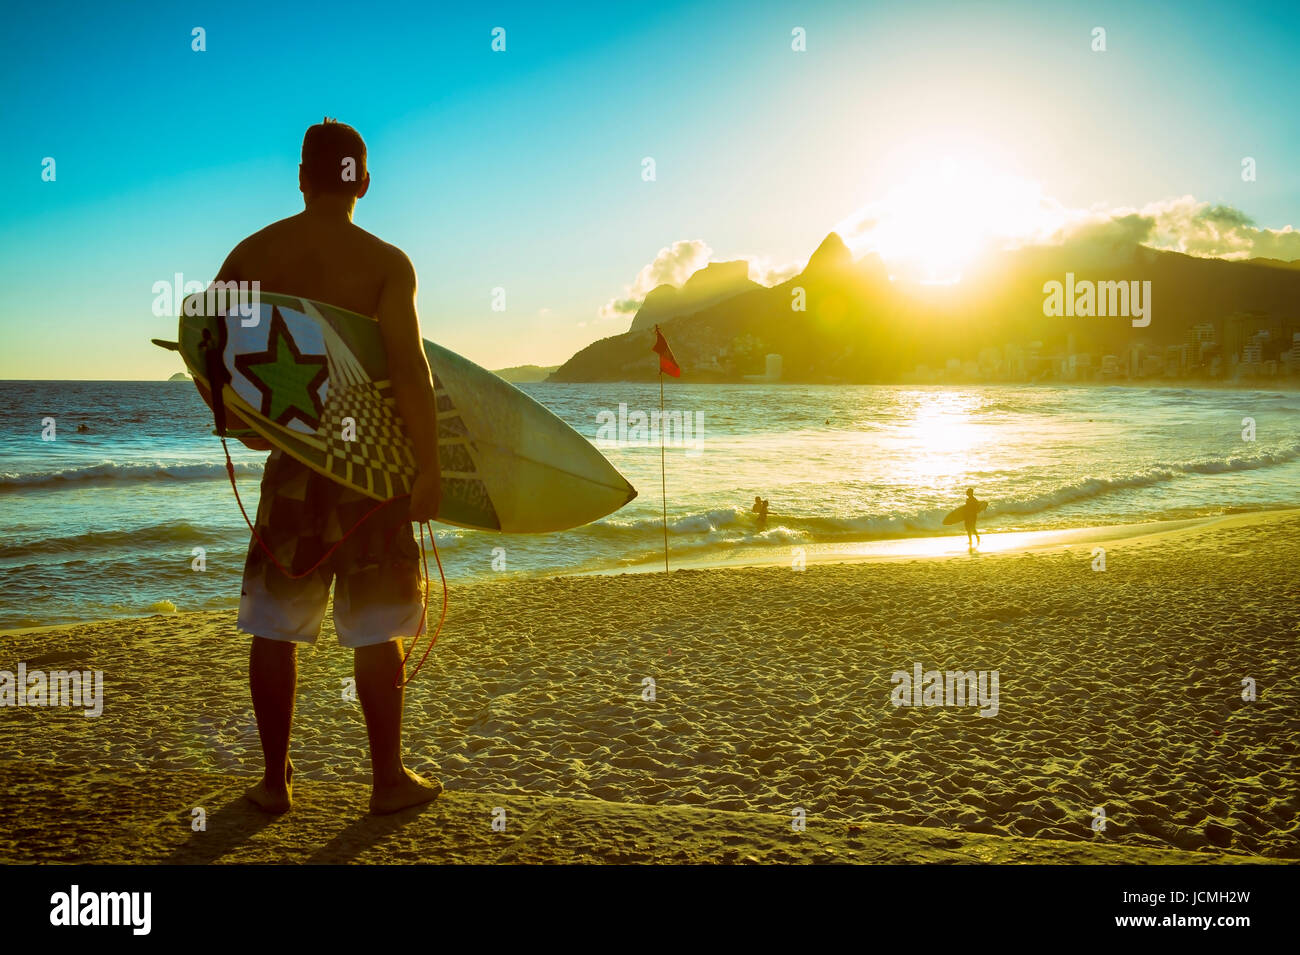 Sunset silhouette de surfer avec son conseil à l'Arpching wat Sunset surf à Arpoador, Ipanema Beach, Photo Stock